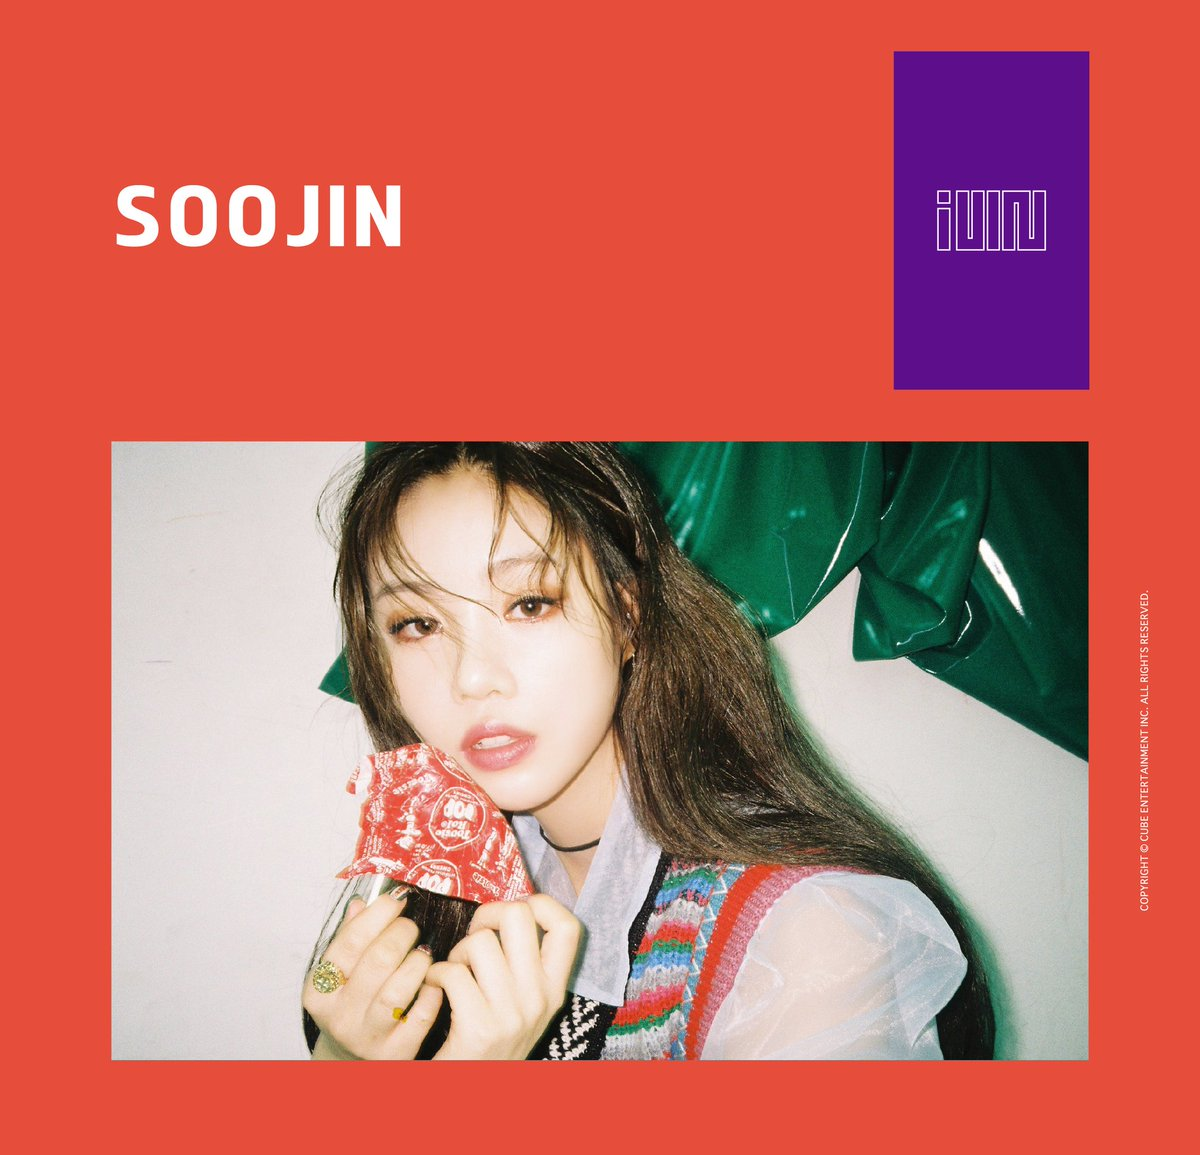 New Girl Group IDLE Teases With Concept Photos Of Soojin